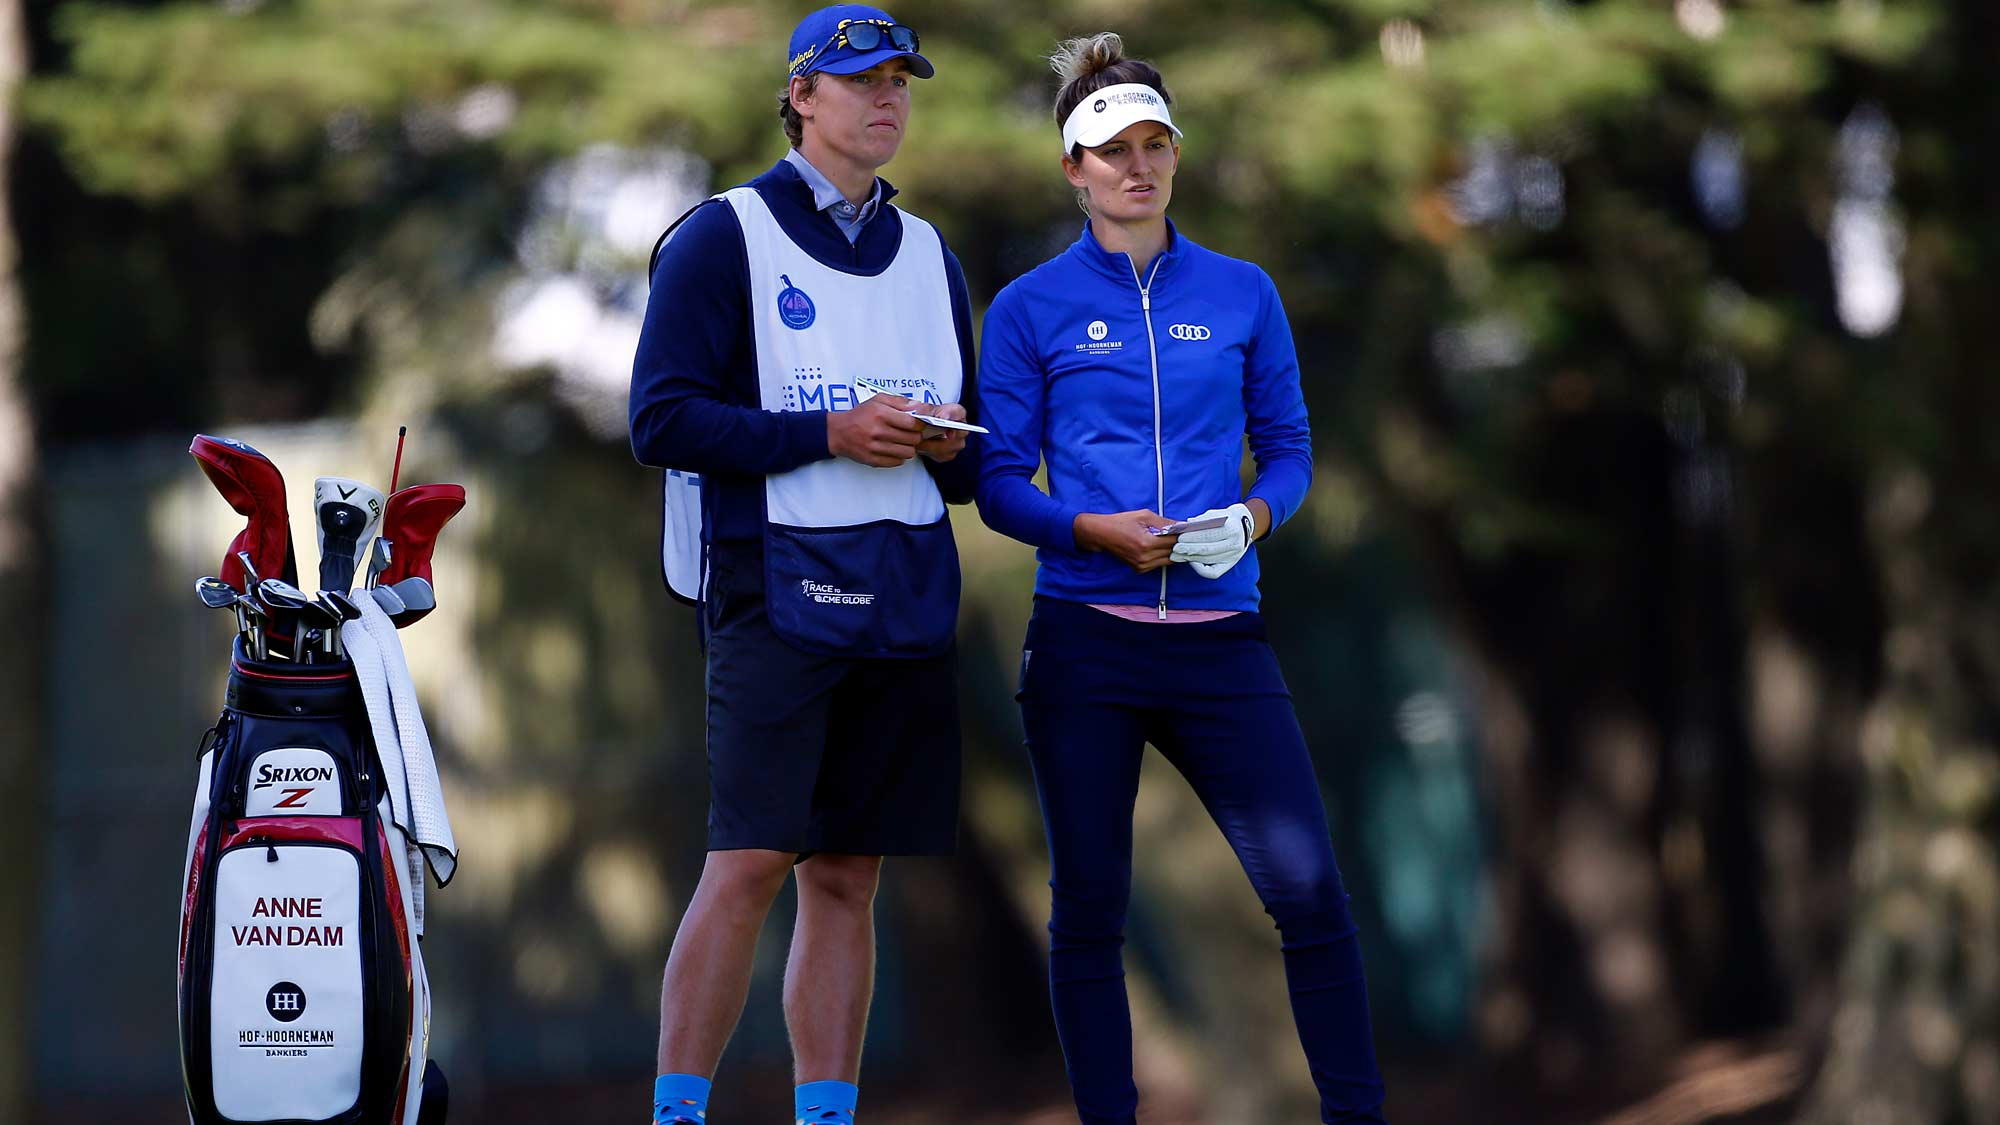 Anne van Dam of the Netherlands talks to her caddie on the 18th hole during the first round of the LPGA Mediheal Championship